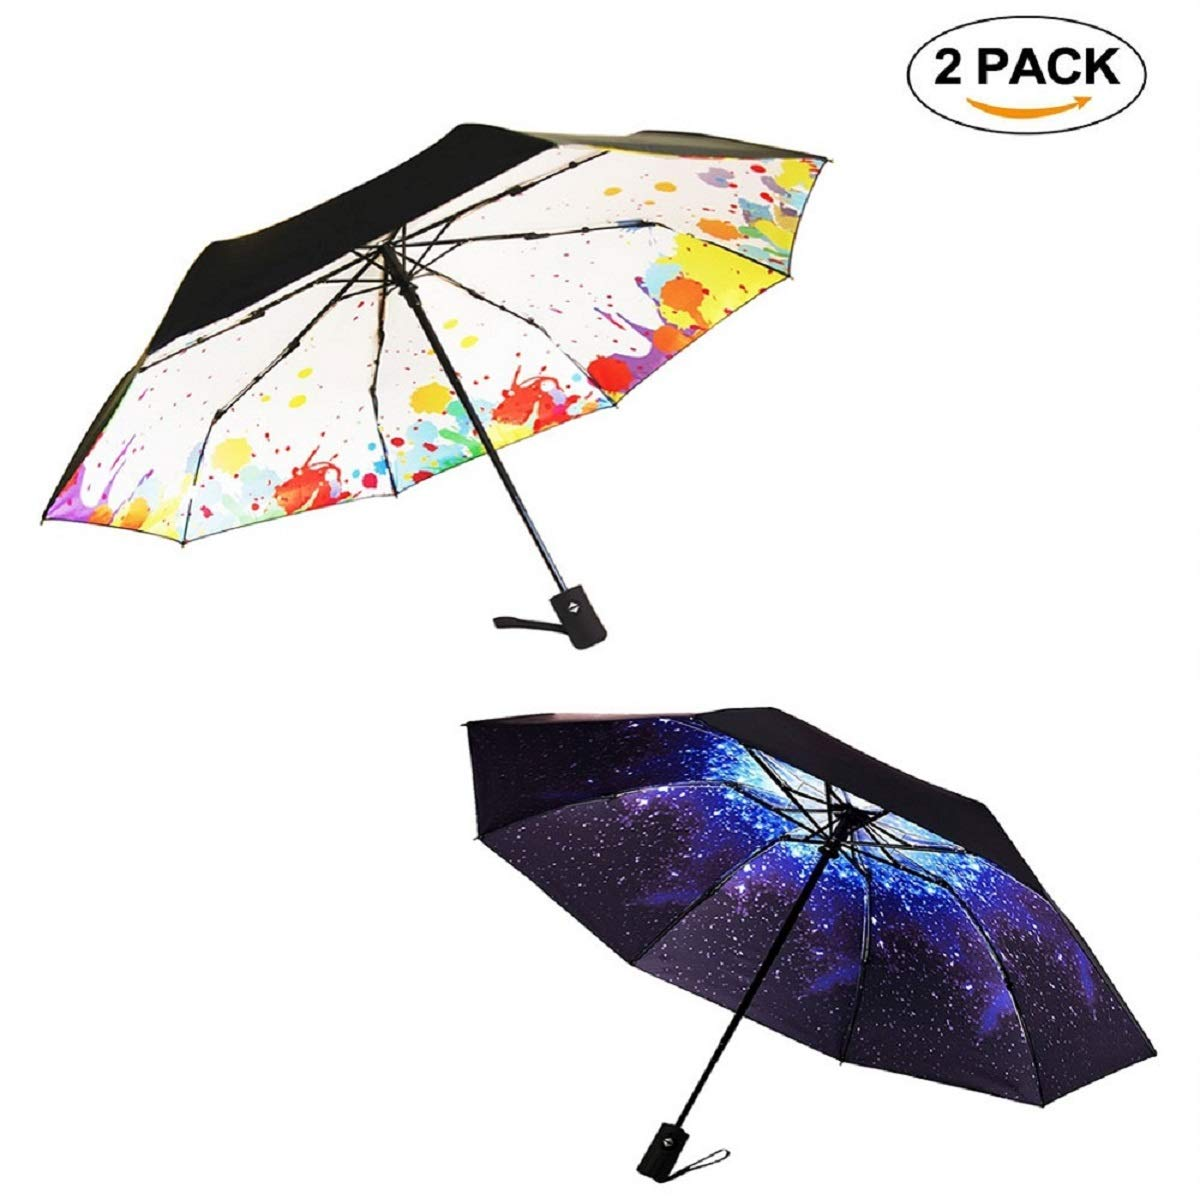 Marriarics Compact Travel Umbrella Windproof, A Set of Starry Sky and Graffiti, Nice Package for Gift.